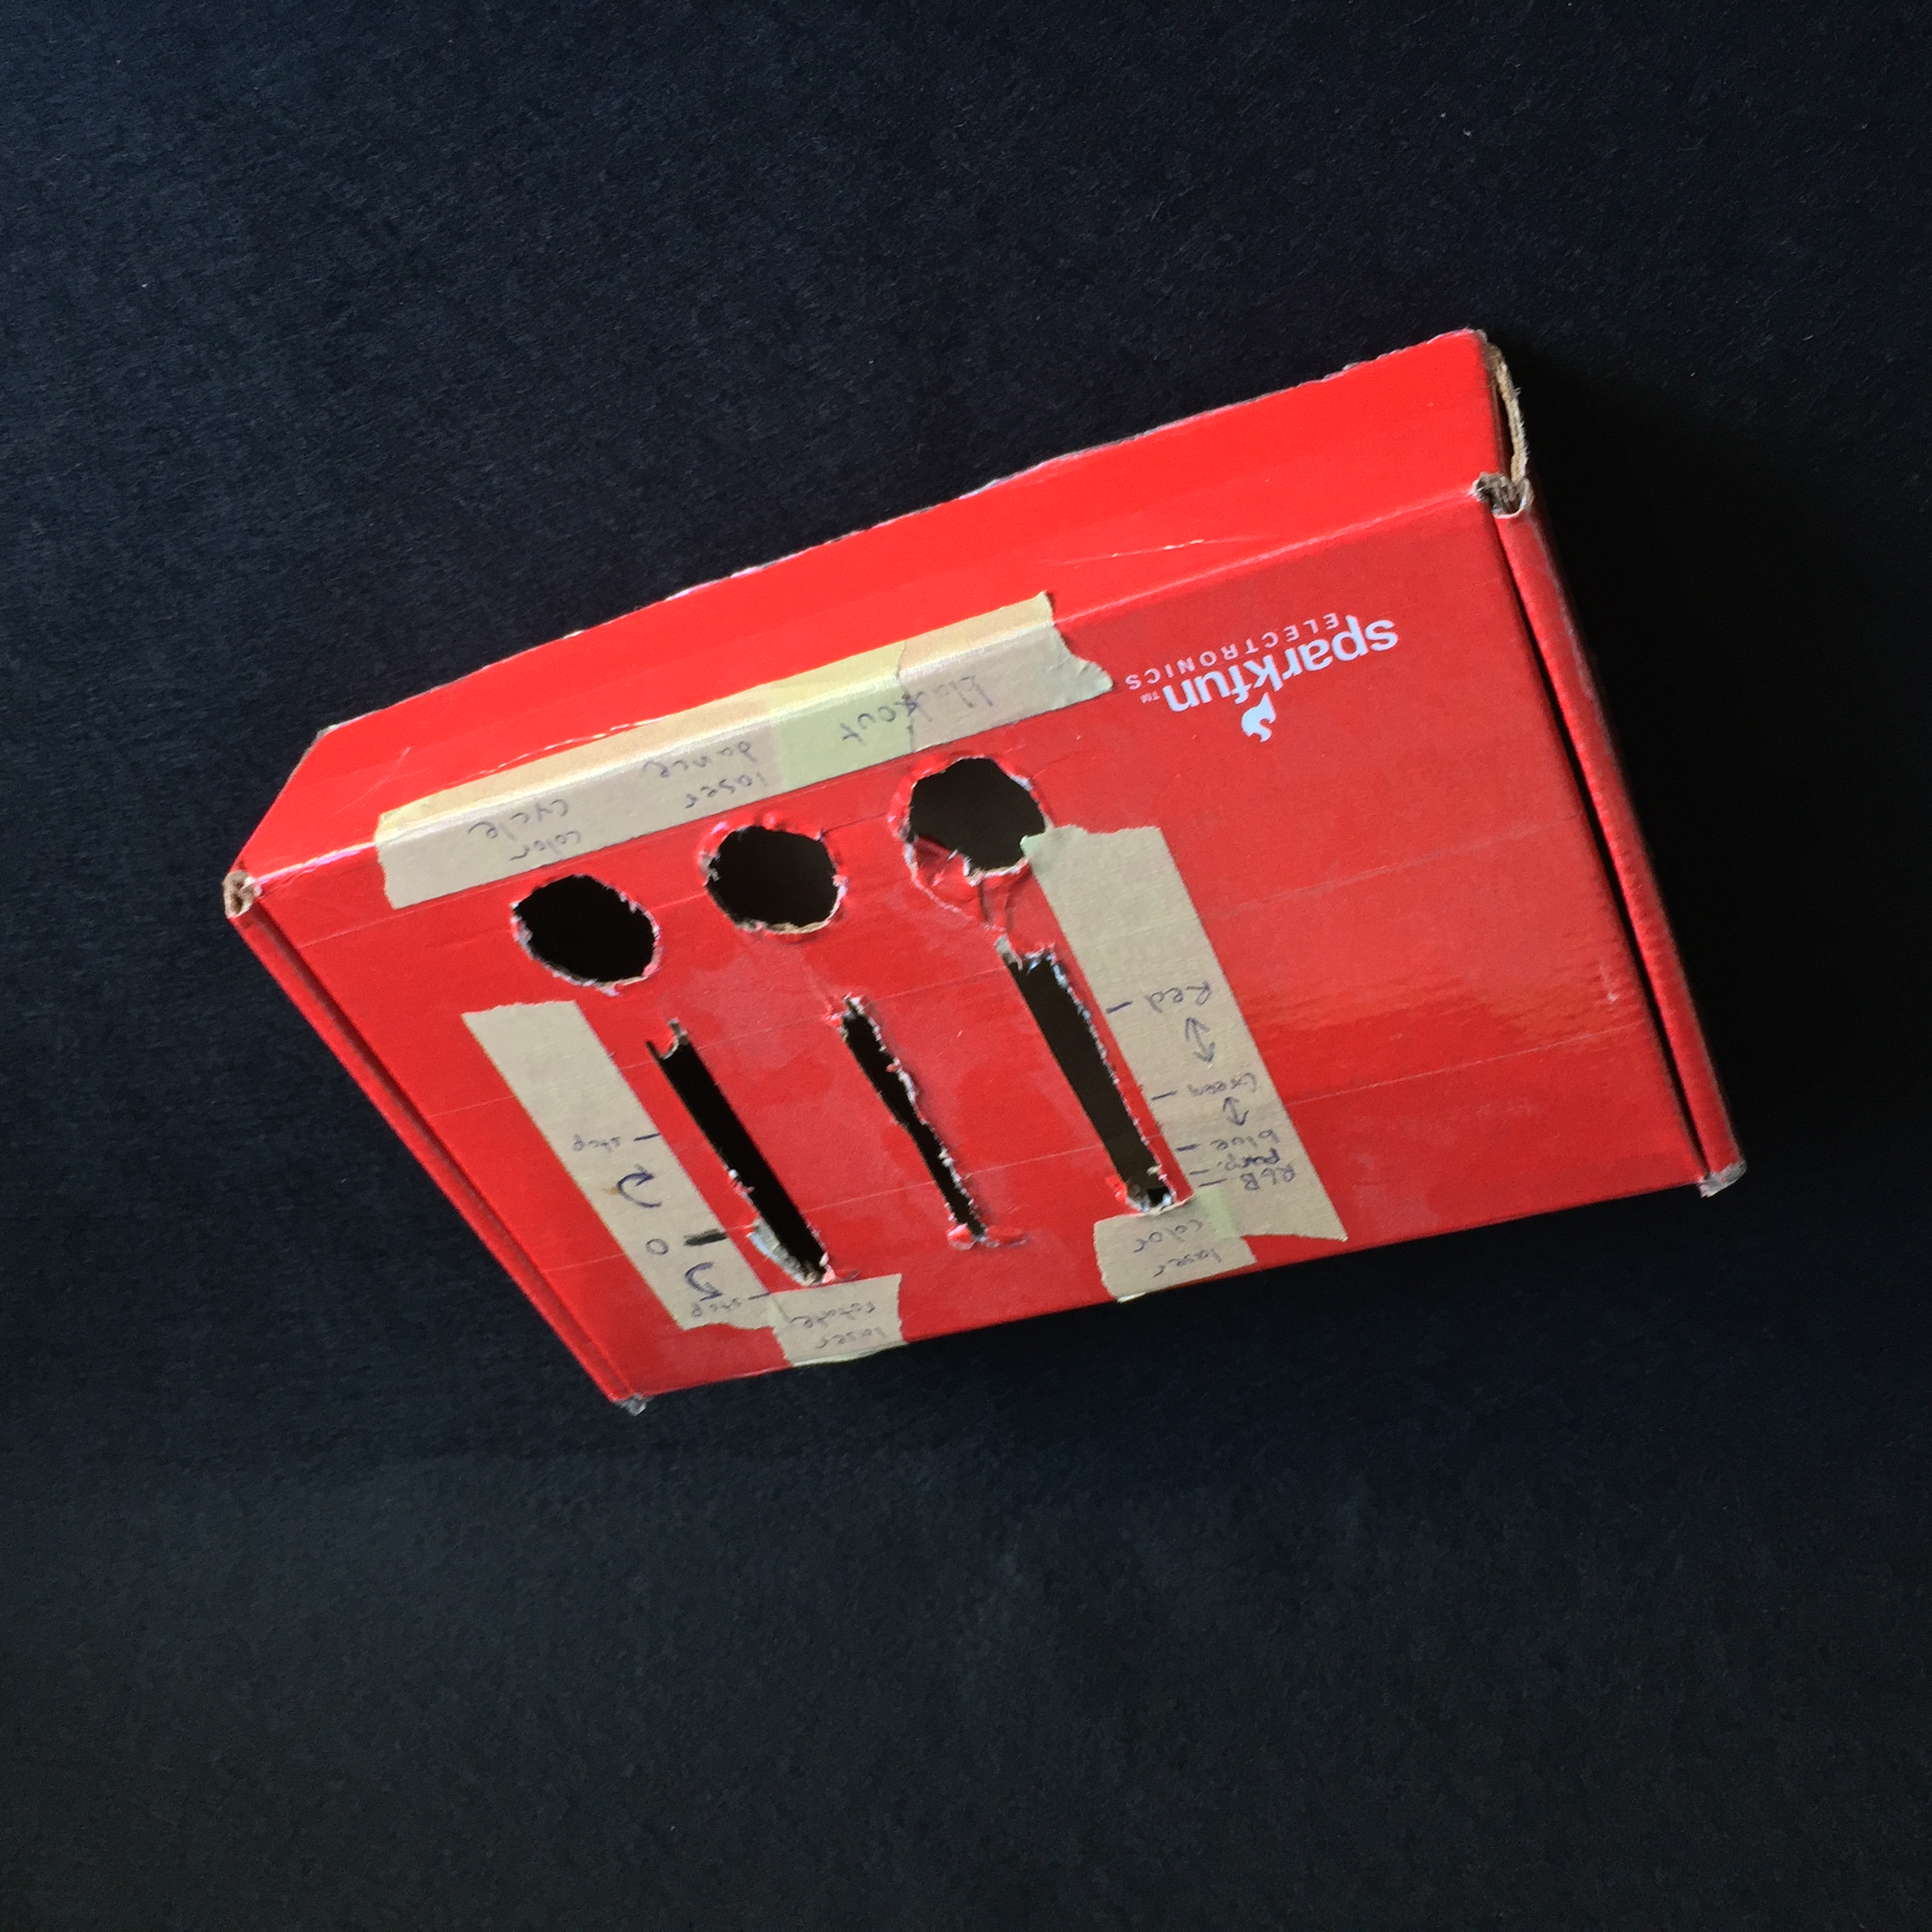 My first very first arcade controllers were for DJs to control lighting effects livewith arcade buttons and sliders